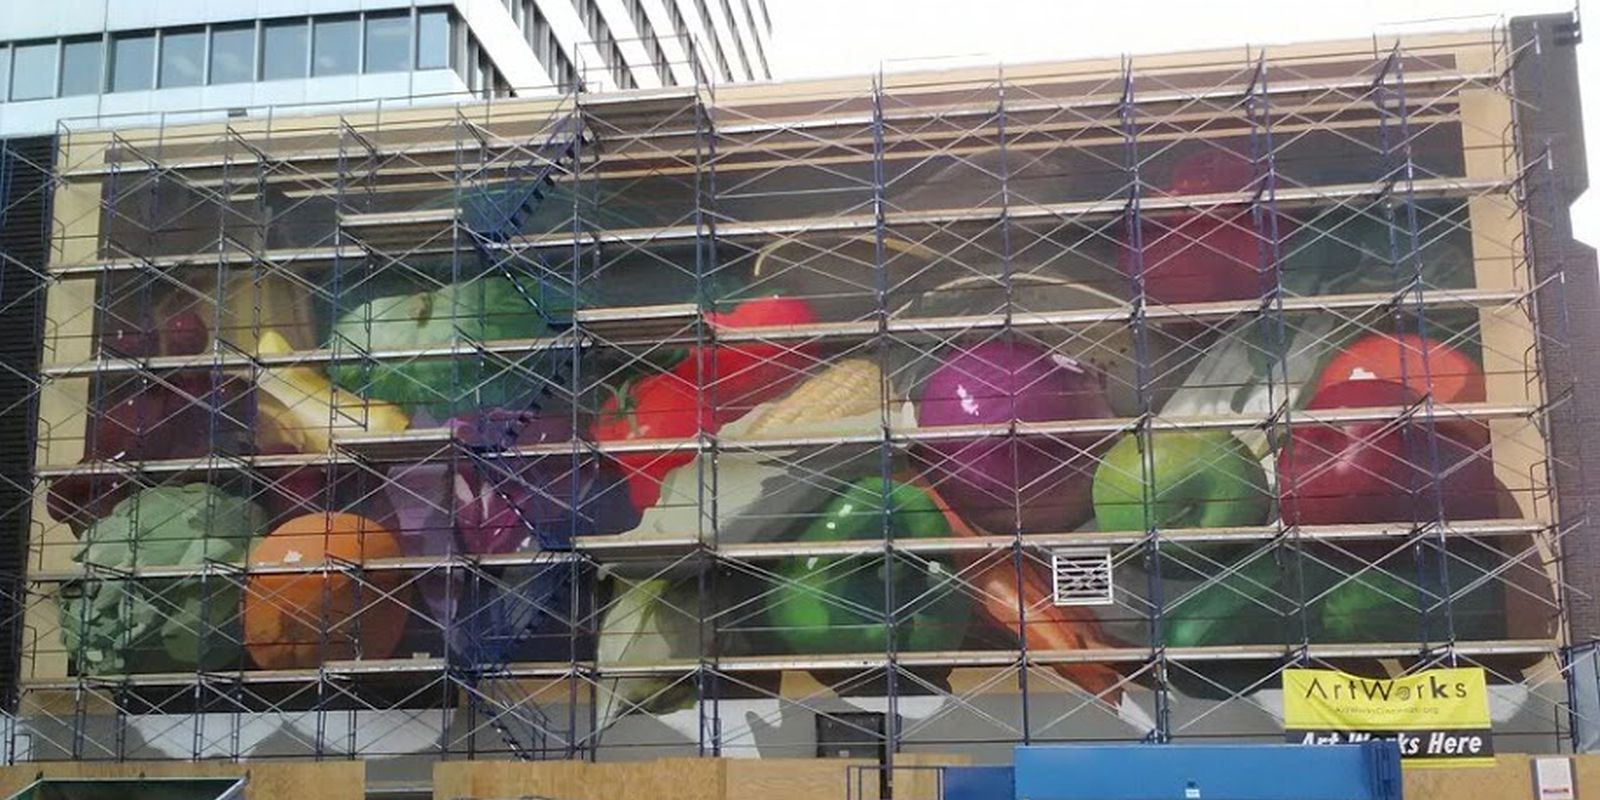 Kroger Headquaters Mural - Cincinnati Ohio - Courtesy of Art Works Cincinnati